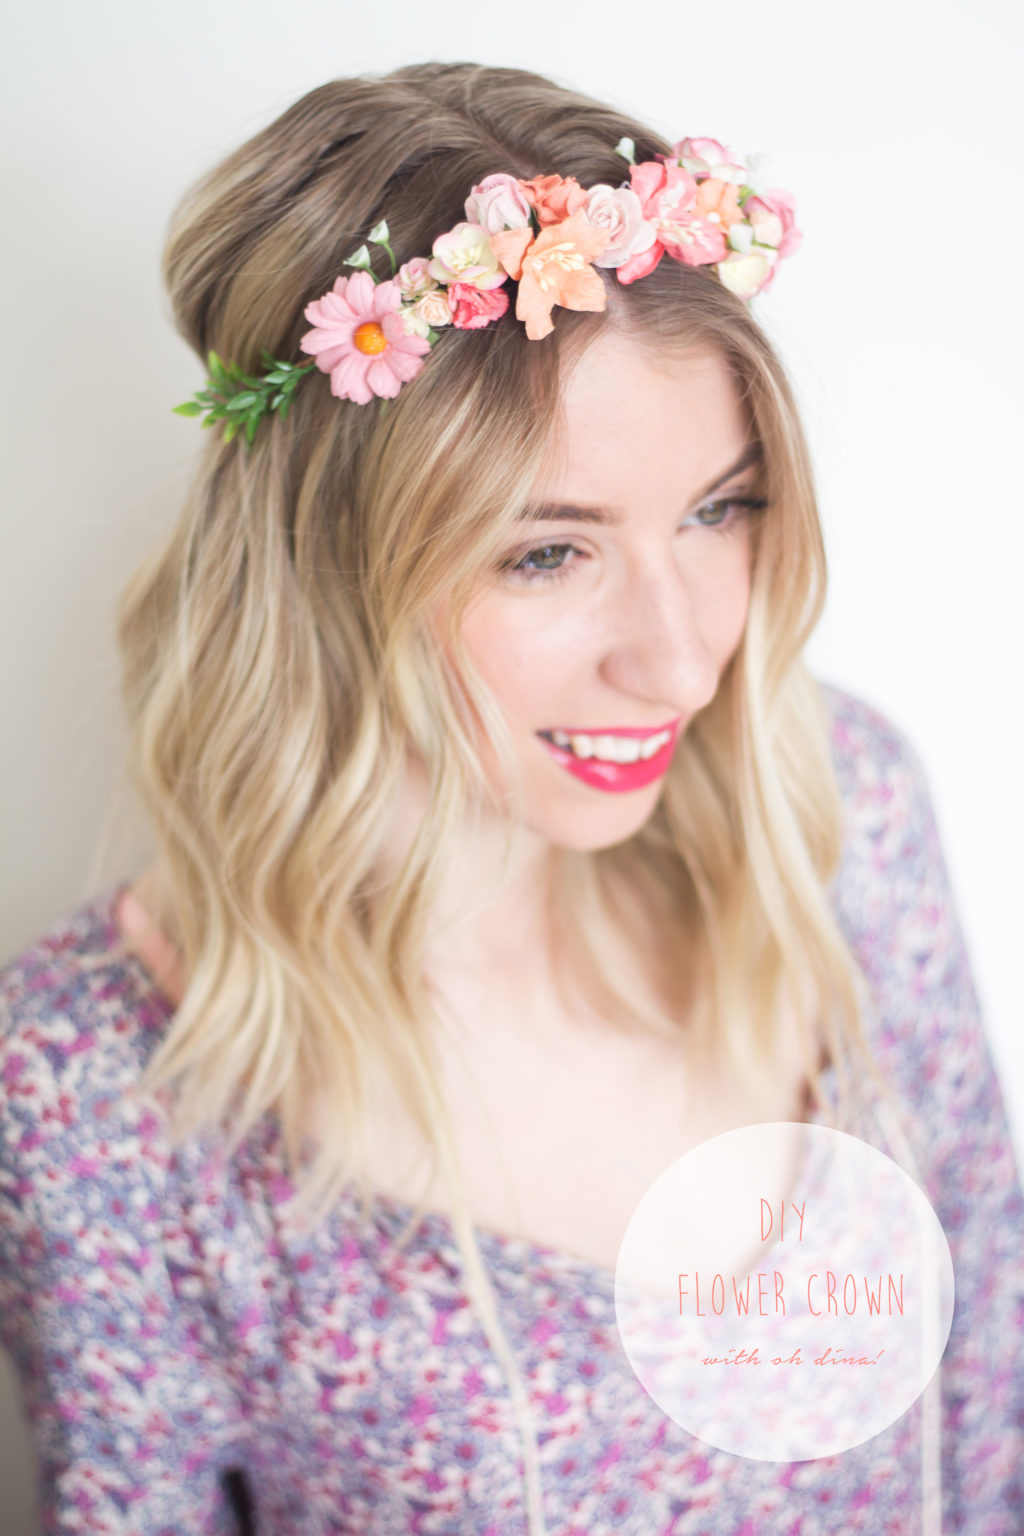 Diy flower crowns with oh dina the blondielocks life style 1 izmirmasajfo